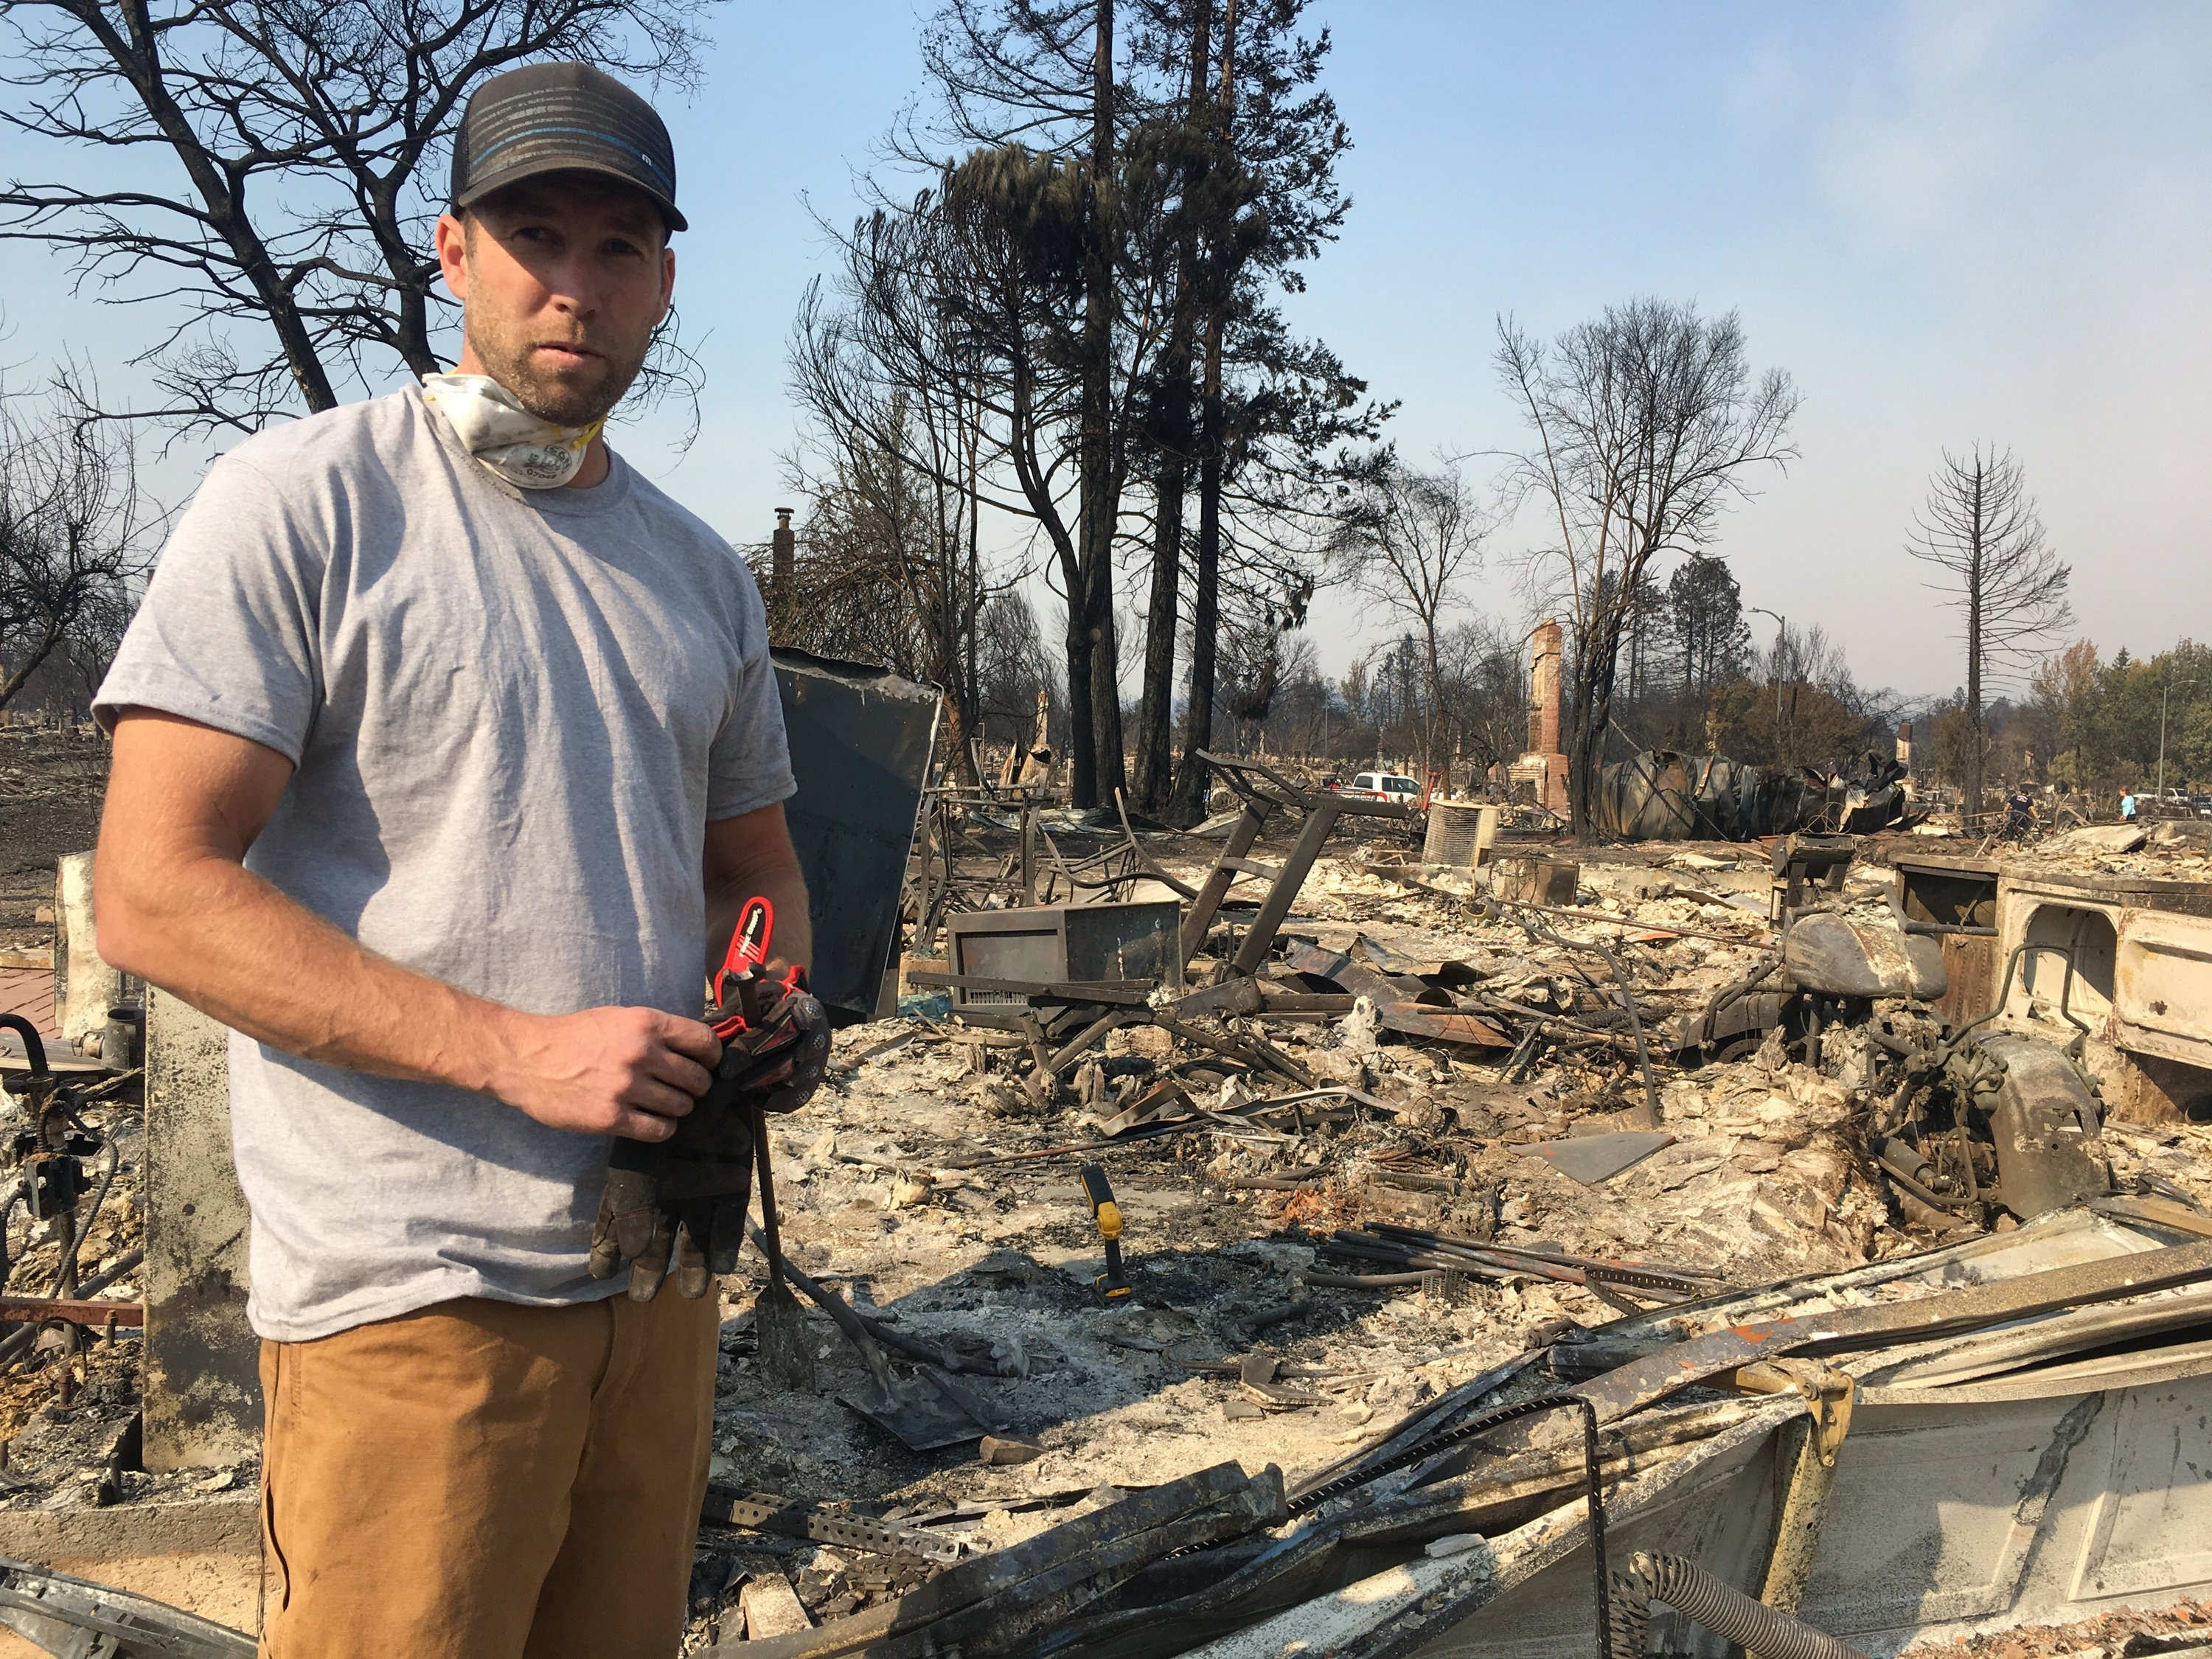 Fire survivor regrets not pulling neighbors from their home